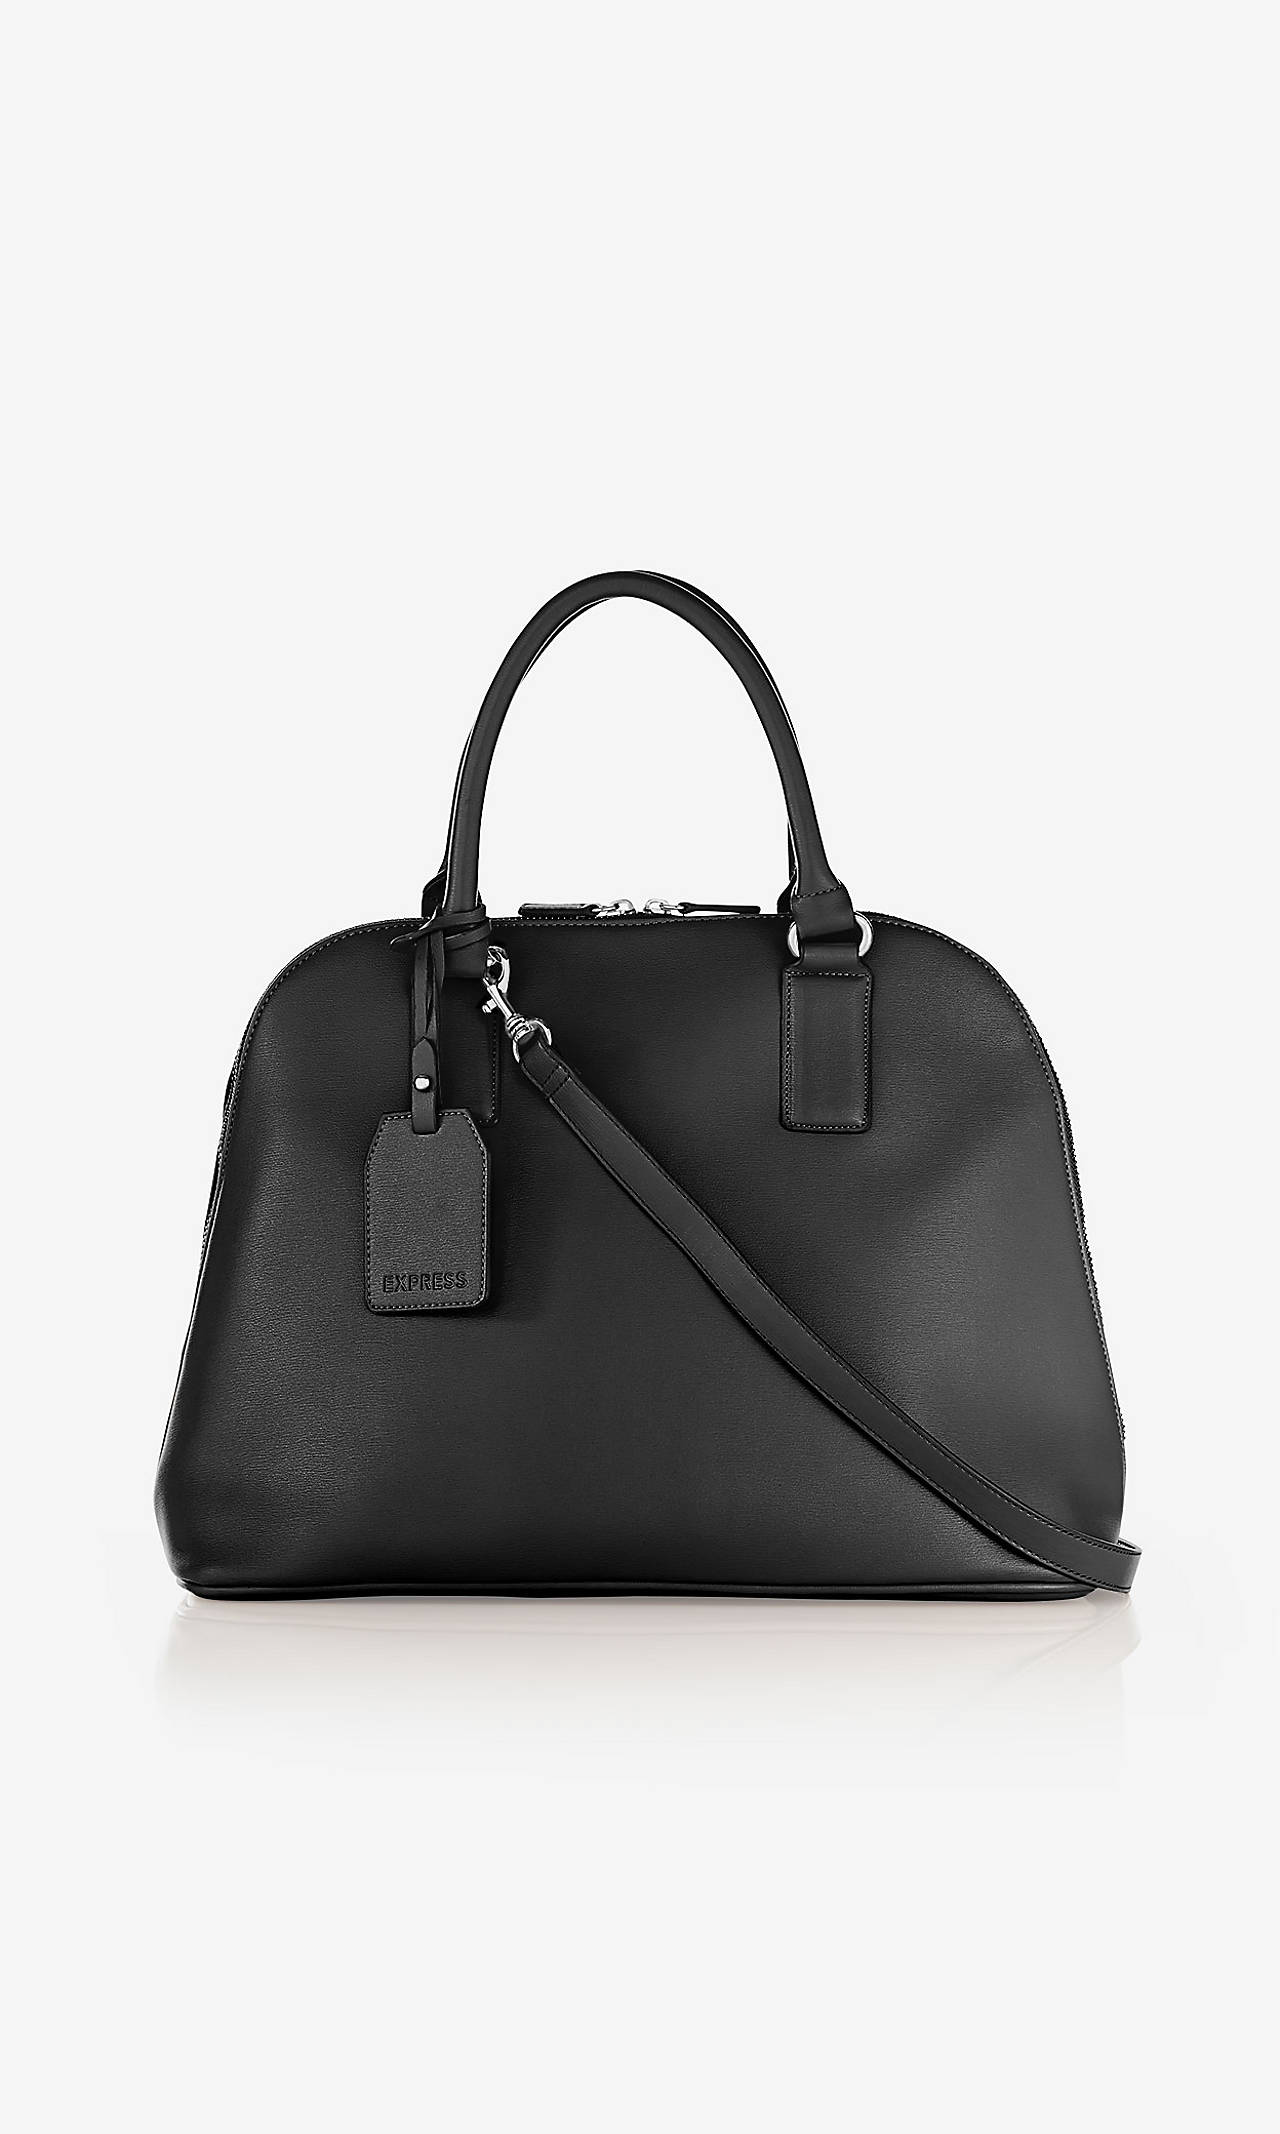 TEXTURED BOWLER BAG from EXPRESS